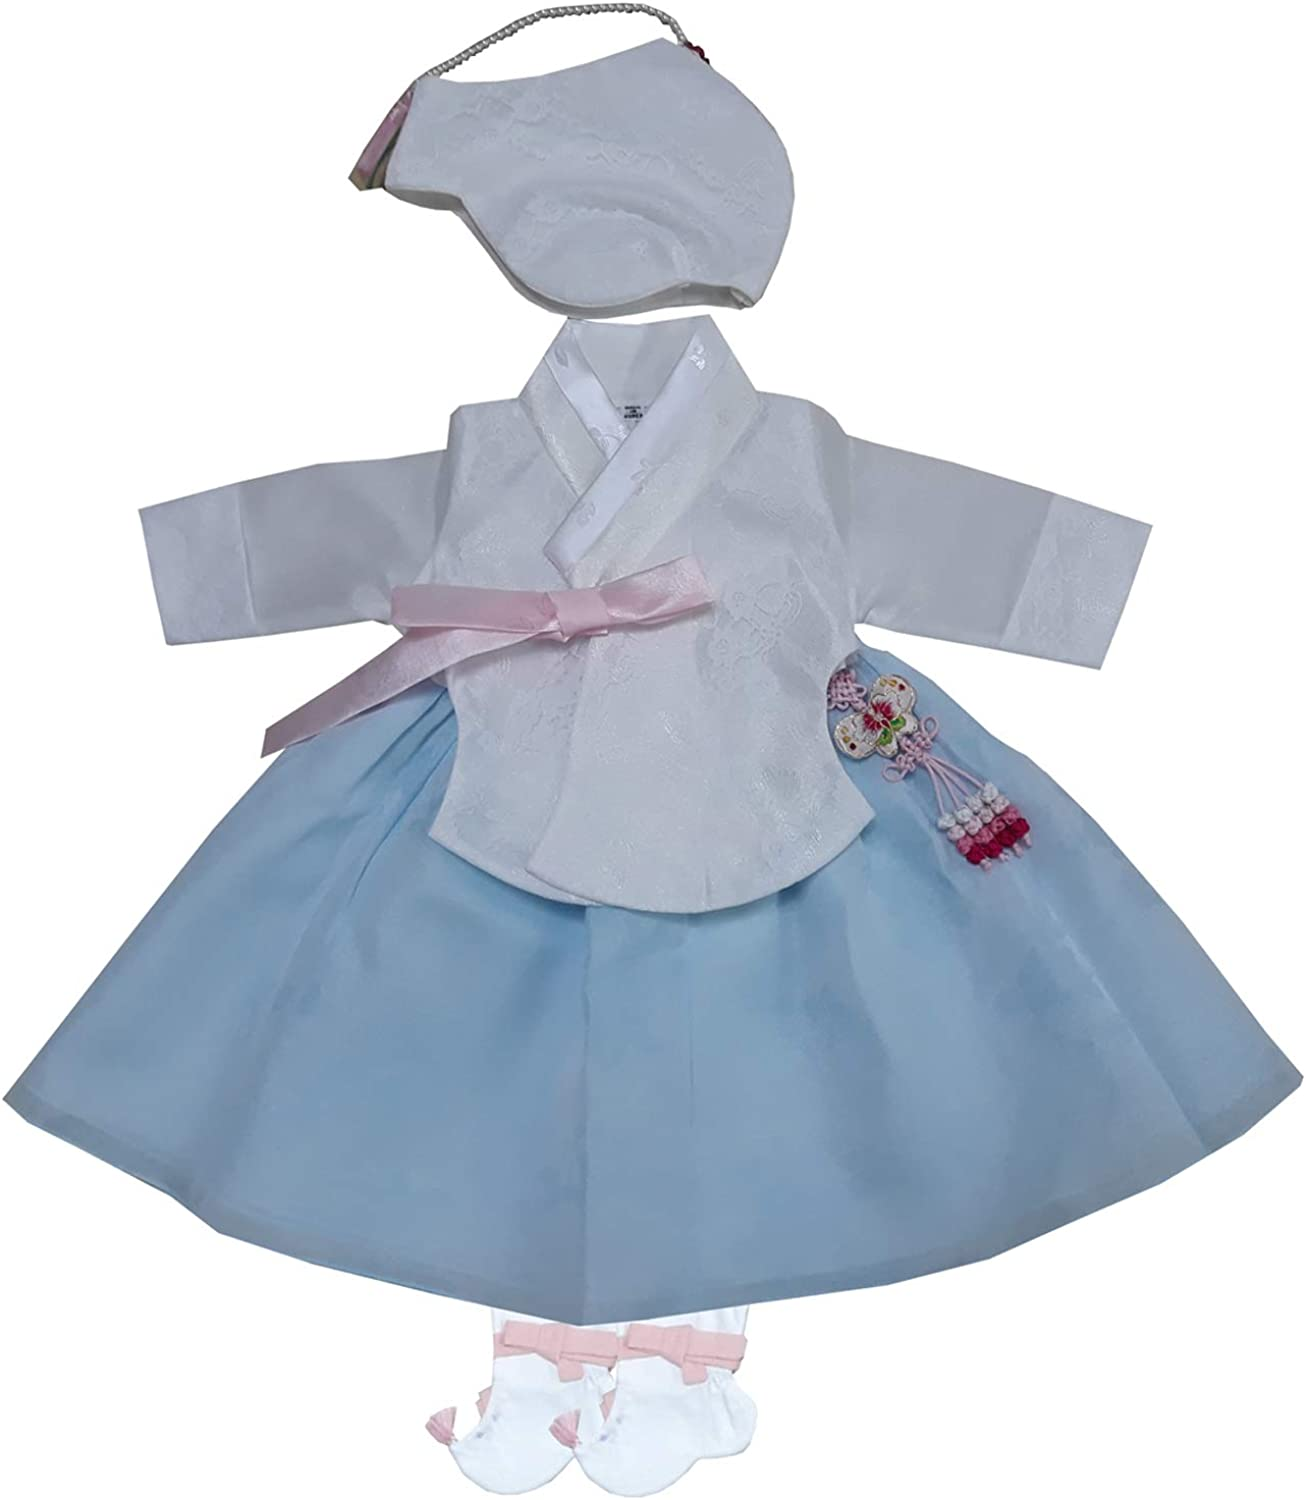 100 Day Birth Korea Baby Girl Hanbok Traditional Dress Outfits Celebration Party White Set 61gE0WNsncLUL1500_